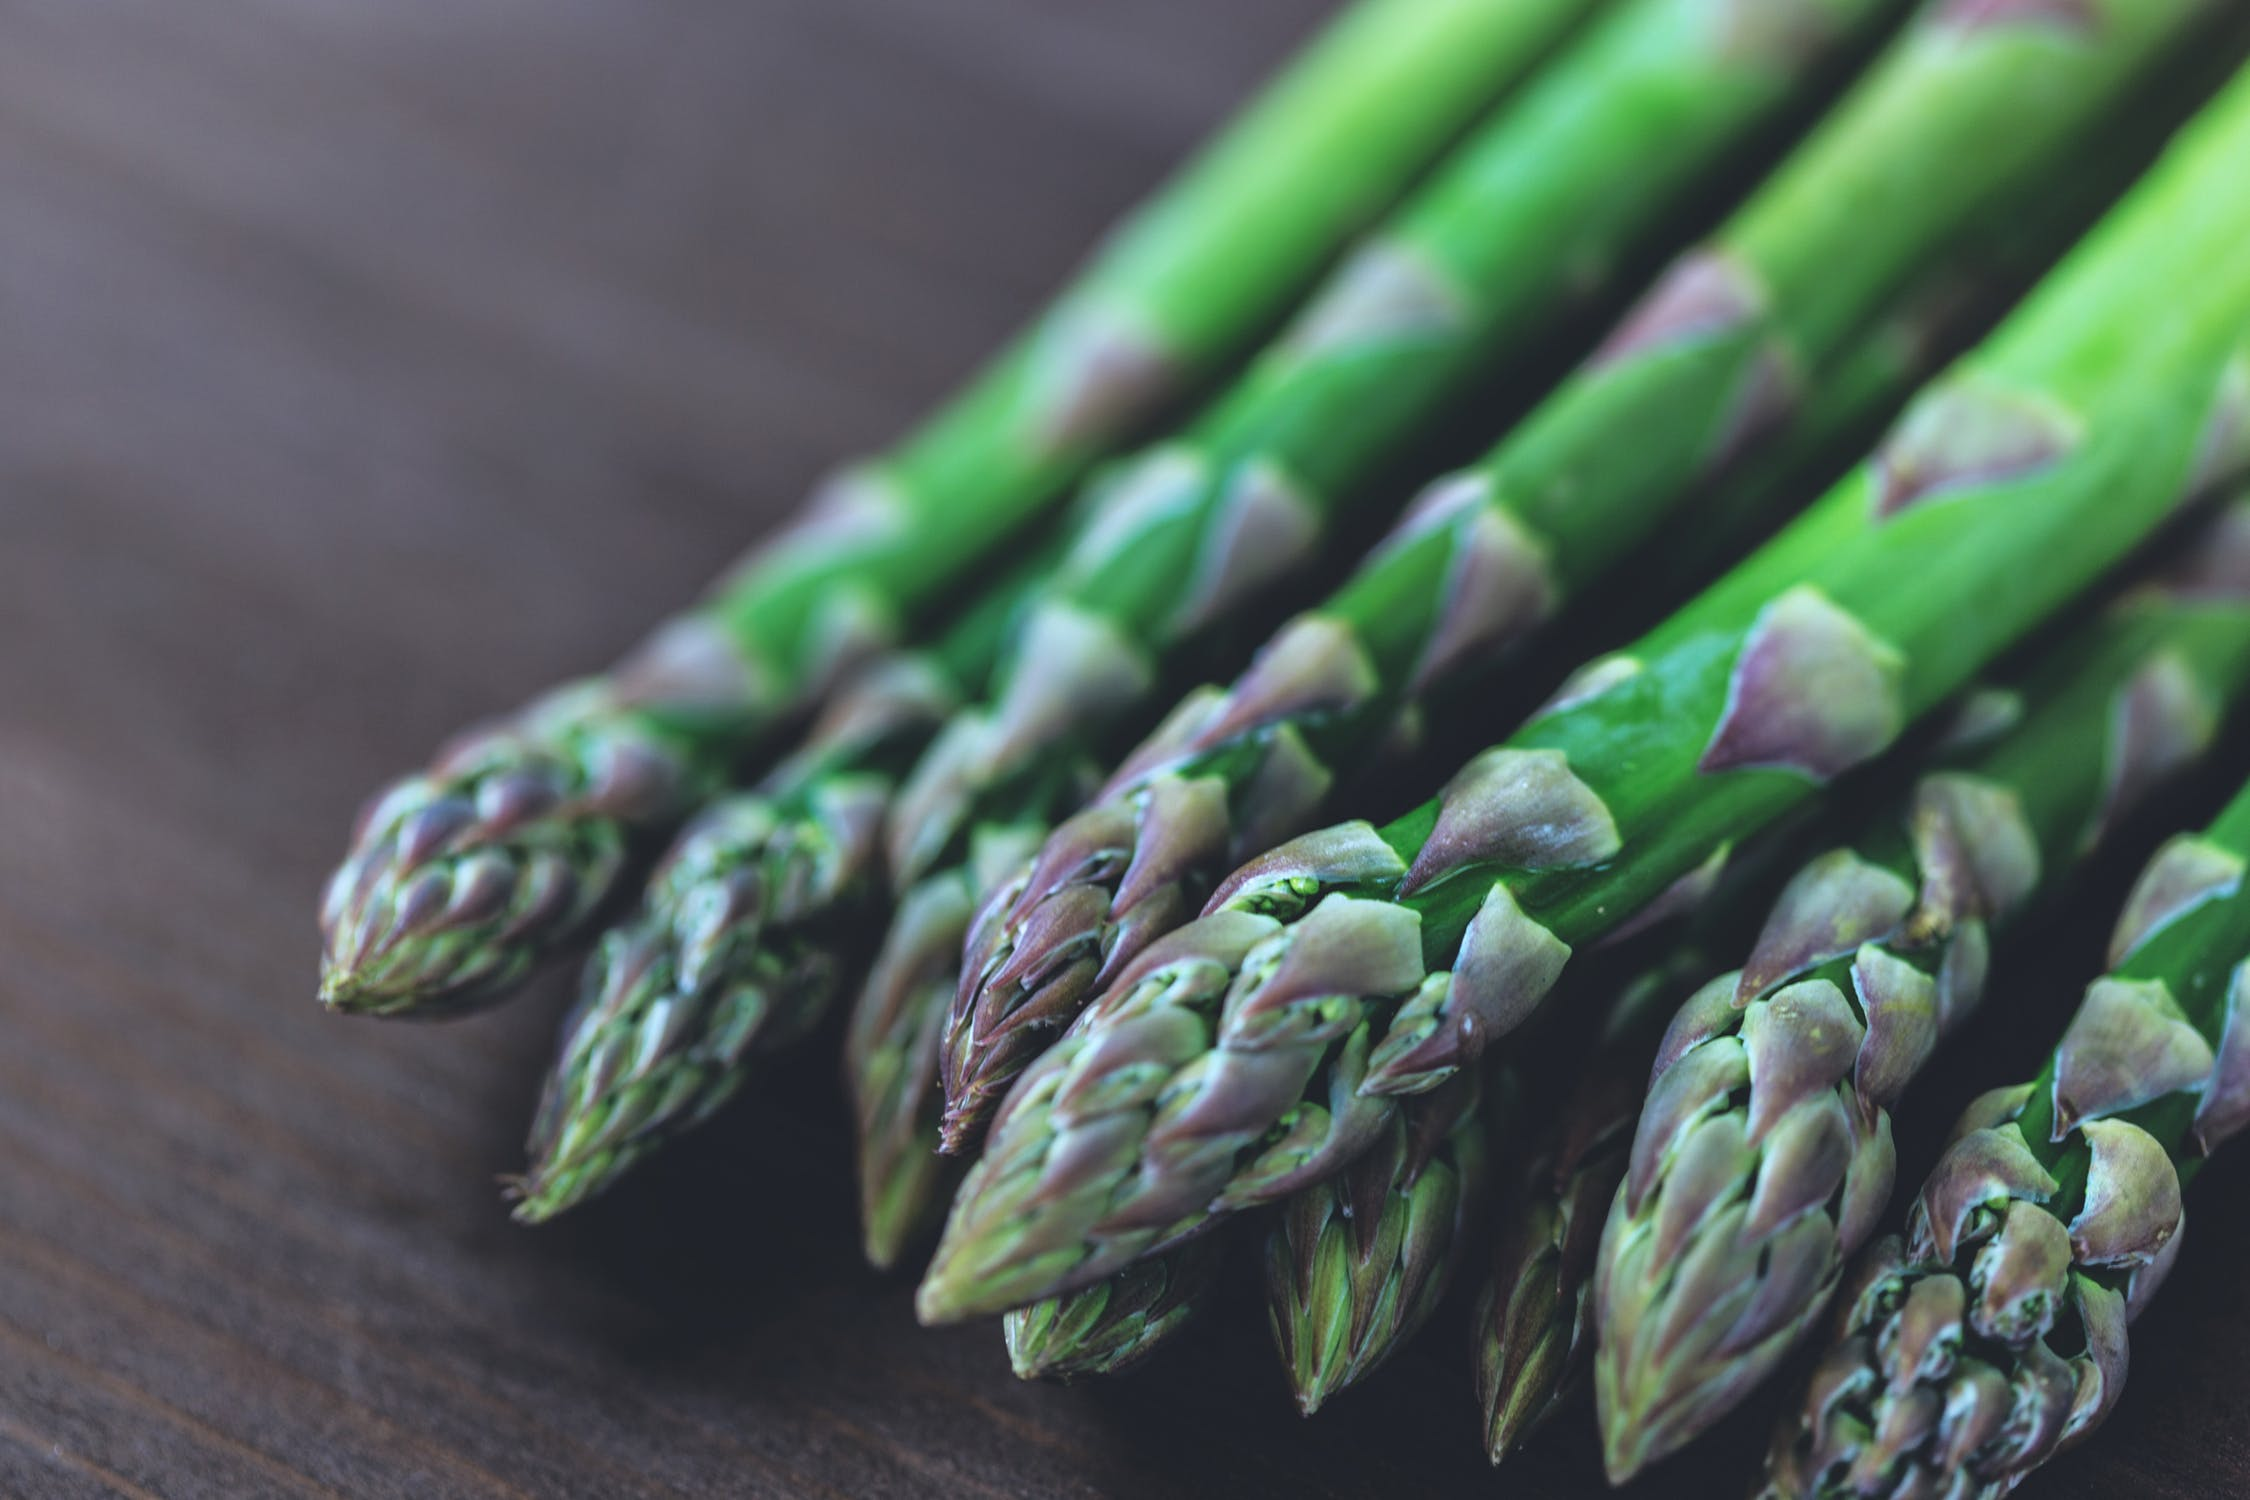 Asparagus is a great source of antioxidants!